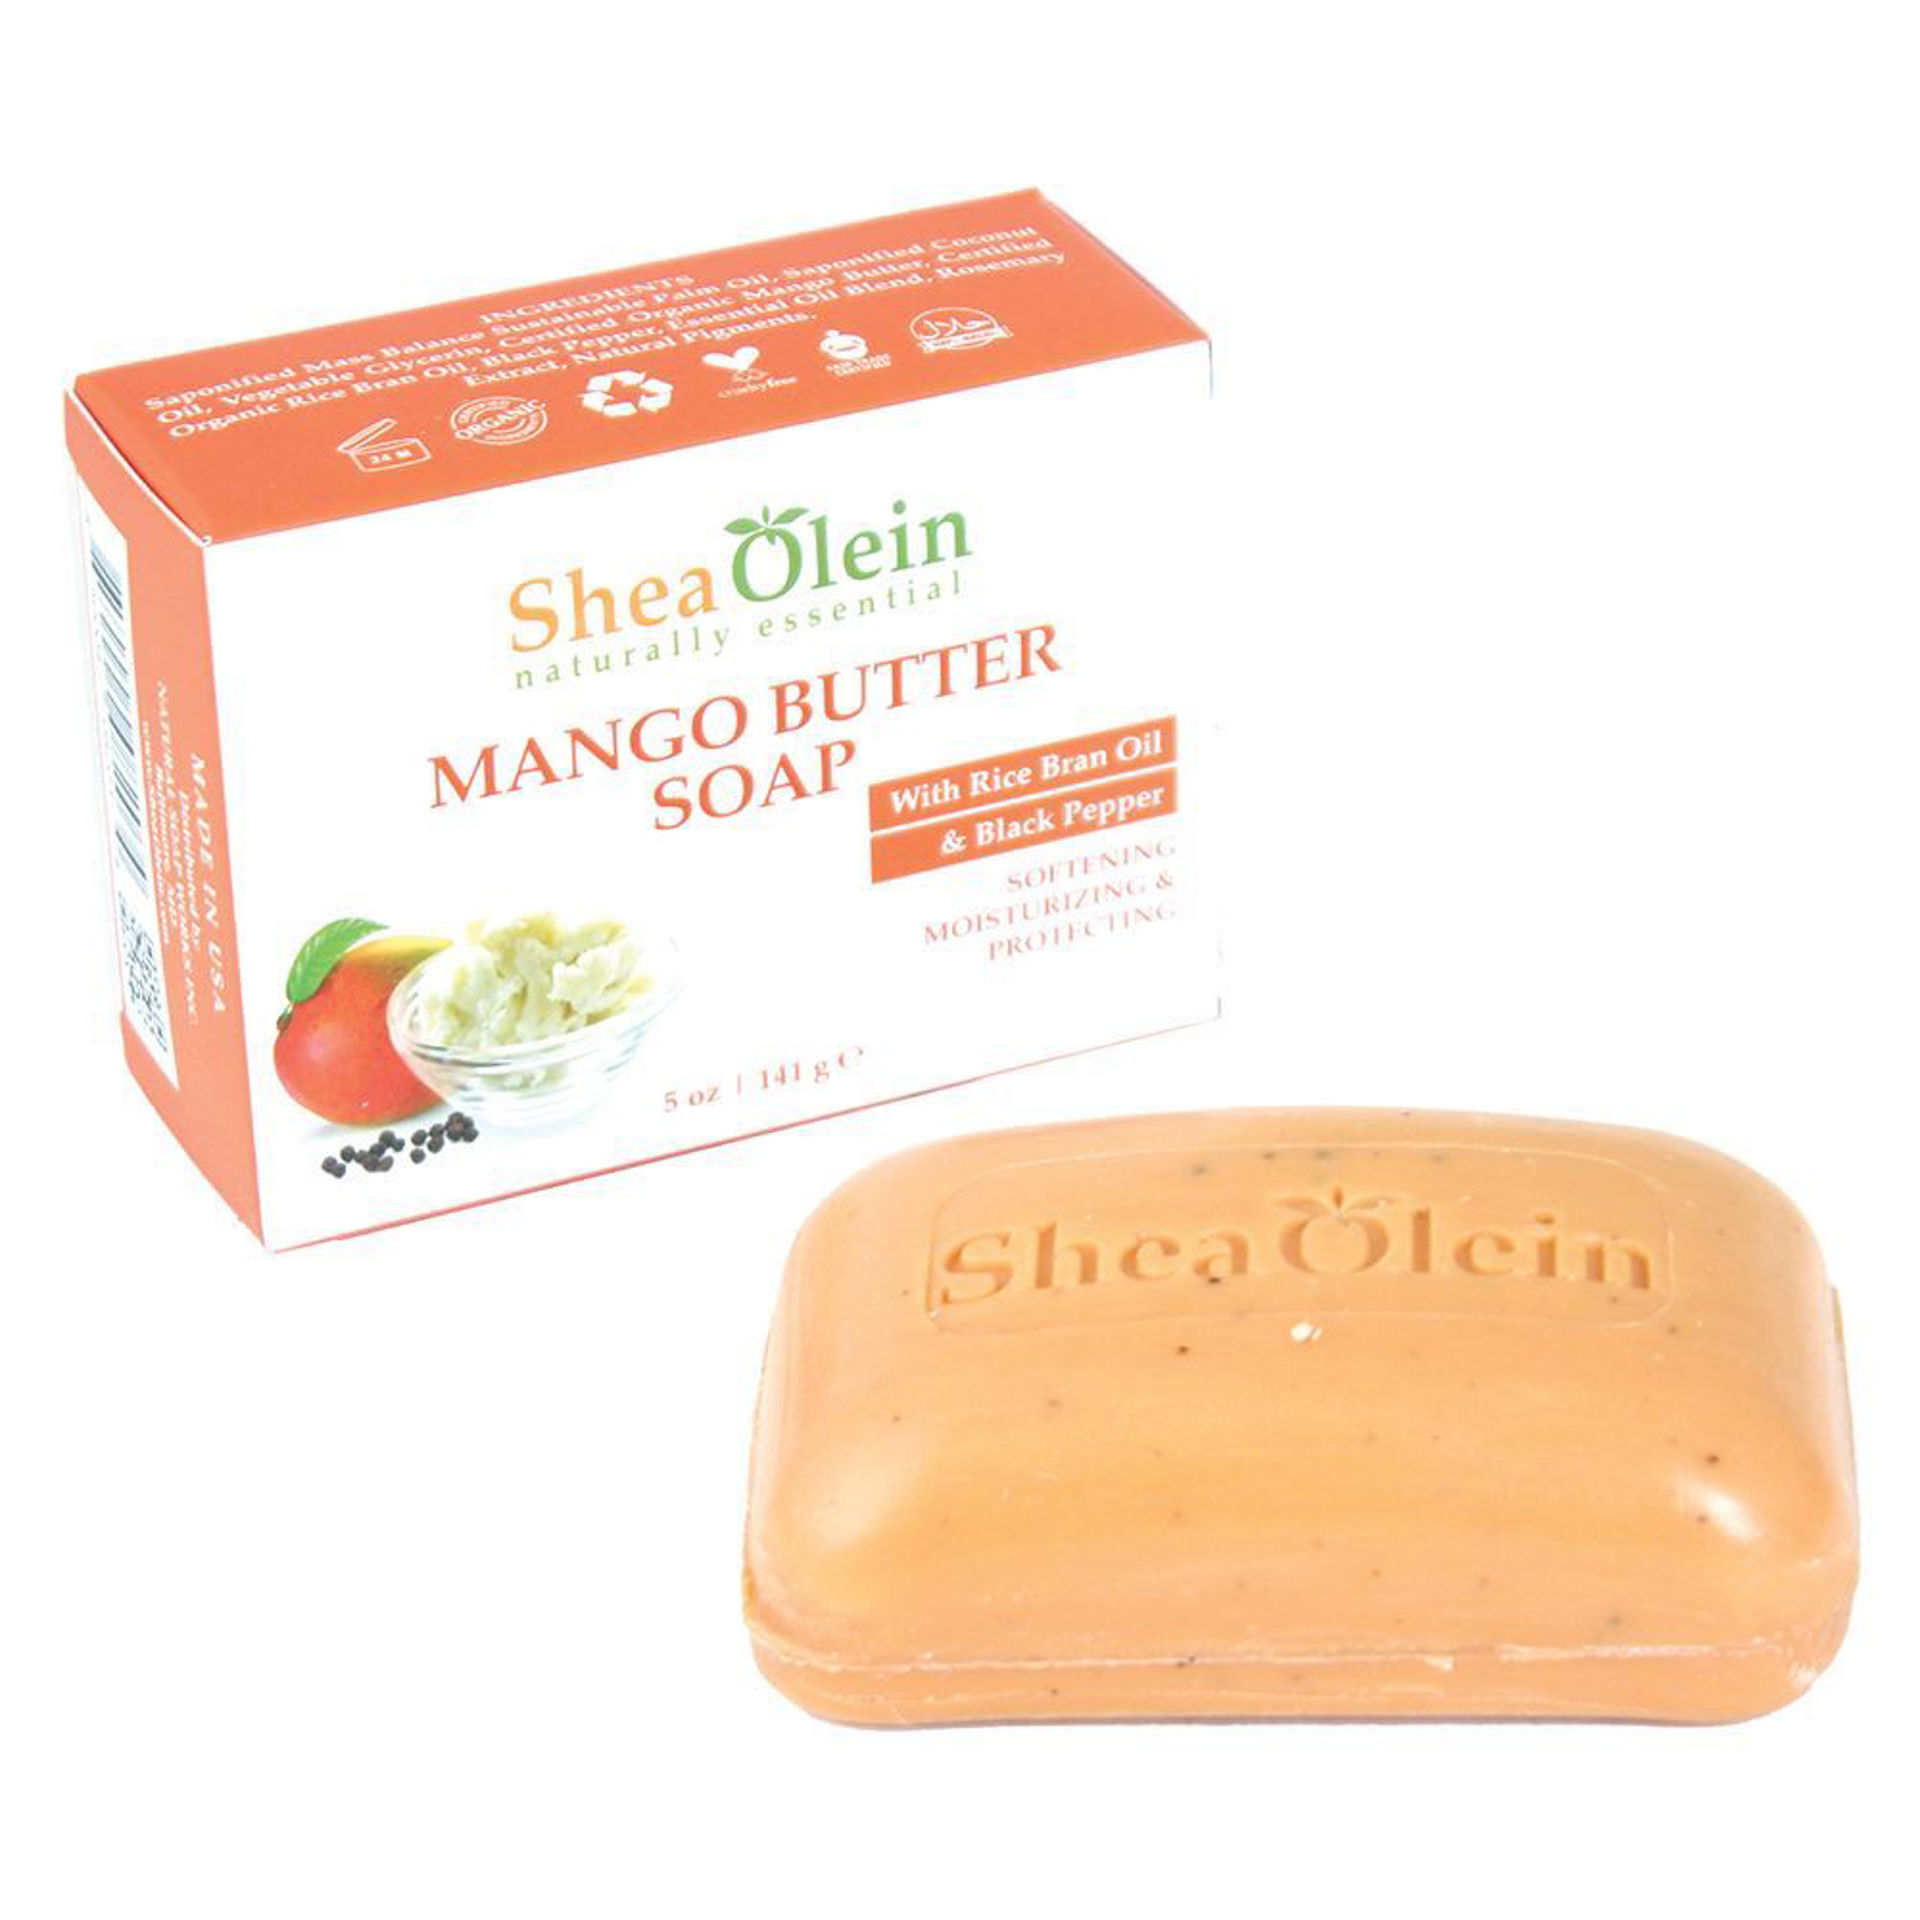 Picture of Mango Butter Soap - 5 oz.